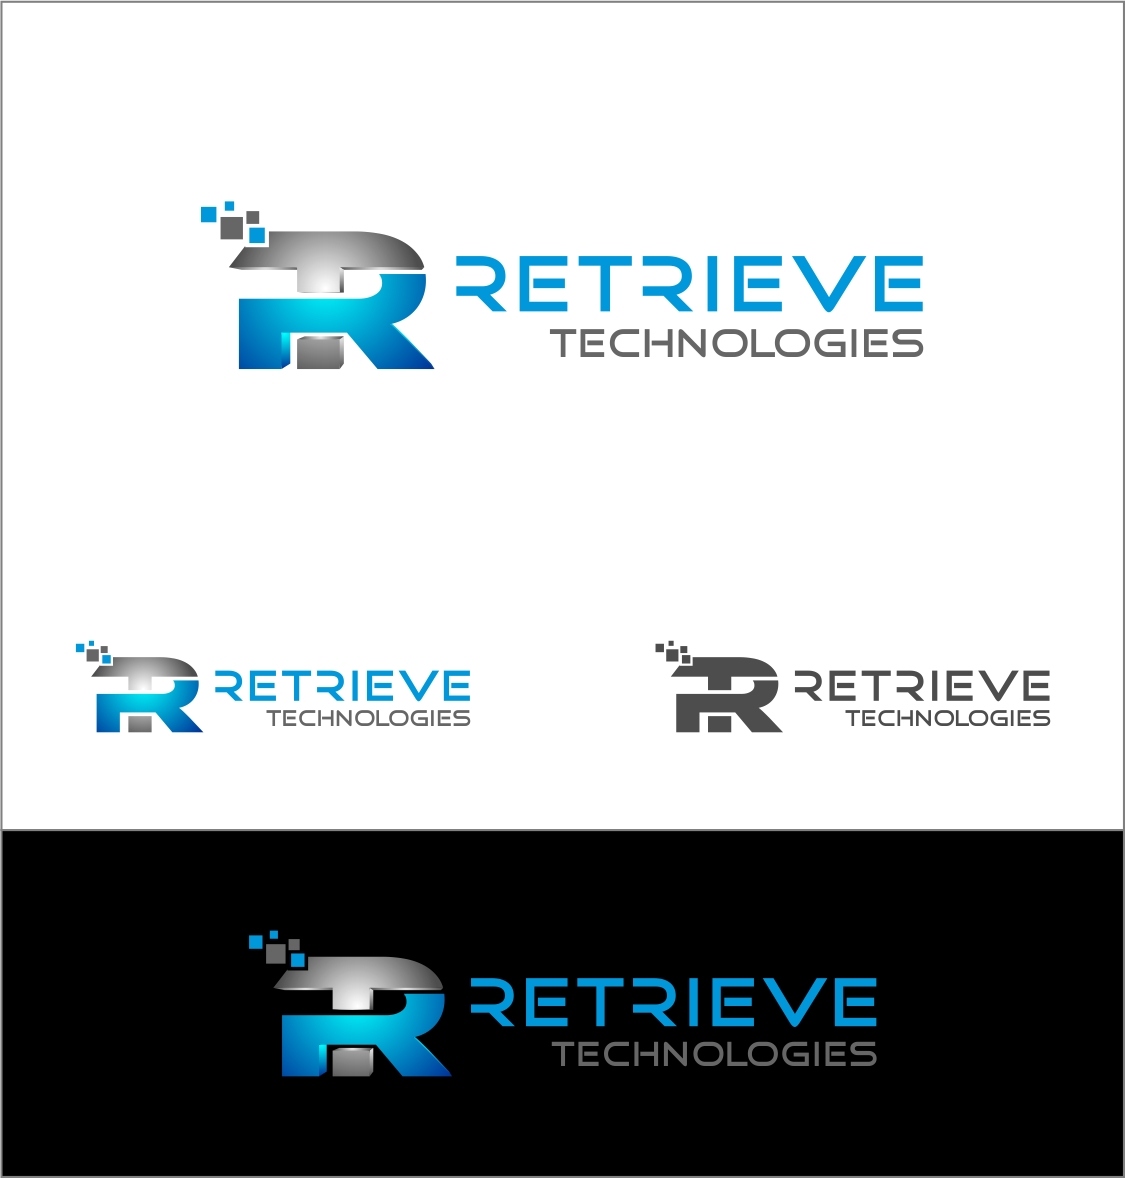 Logo Design by haidu - Entry No. 32 in the Logo Design Contest Artistic Logo Design for Retrieve Technologies.